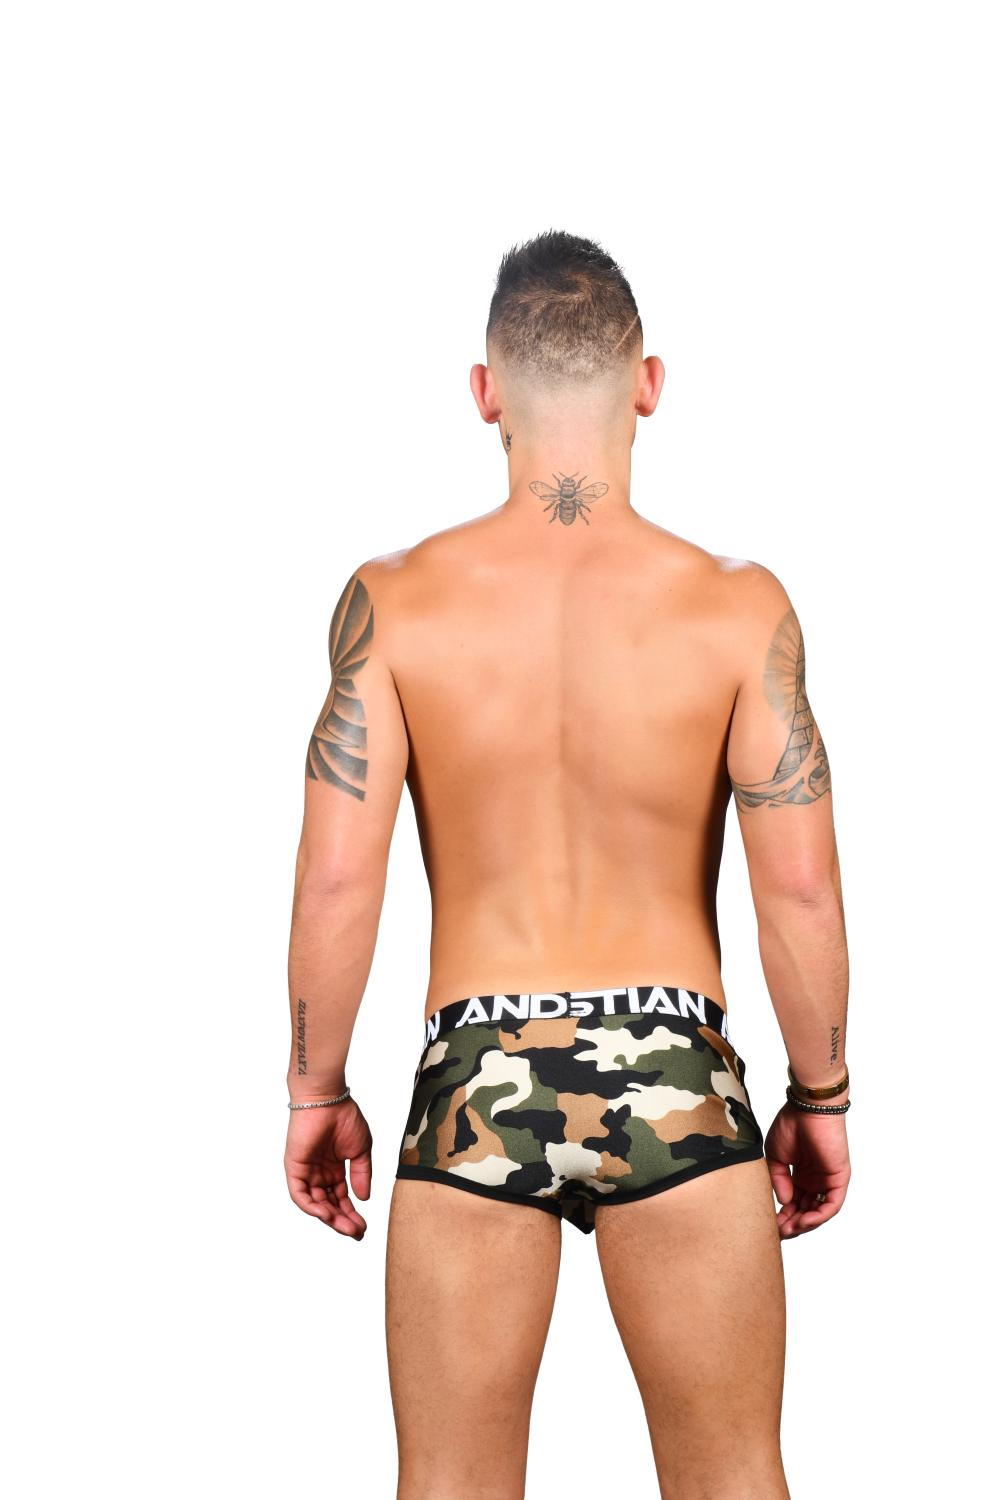 Almost Naked Boxerky ANDREW CHRISTIAN Camouflage Pocket8